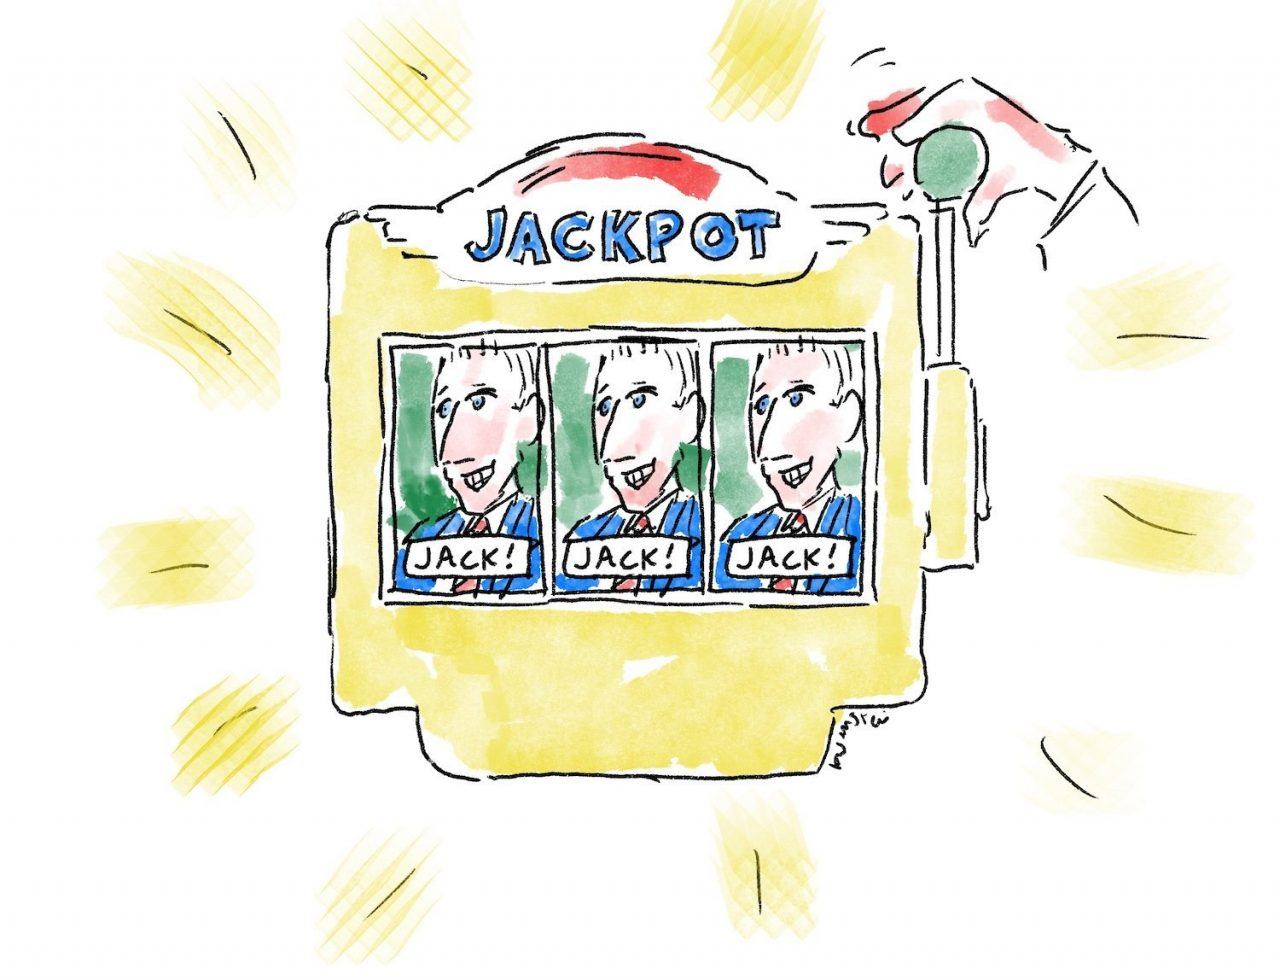 """Drawing of a slot machine, with three identical images of a man named """"Jack"""" on the tumblers. The slot machine says """"Jackpot"""" at the top."""